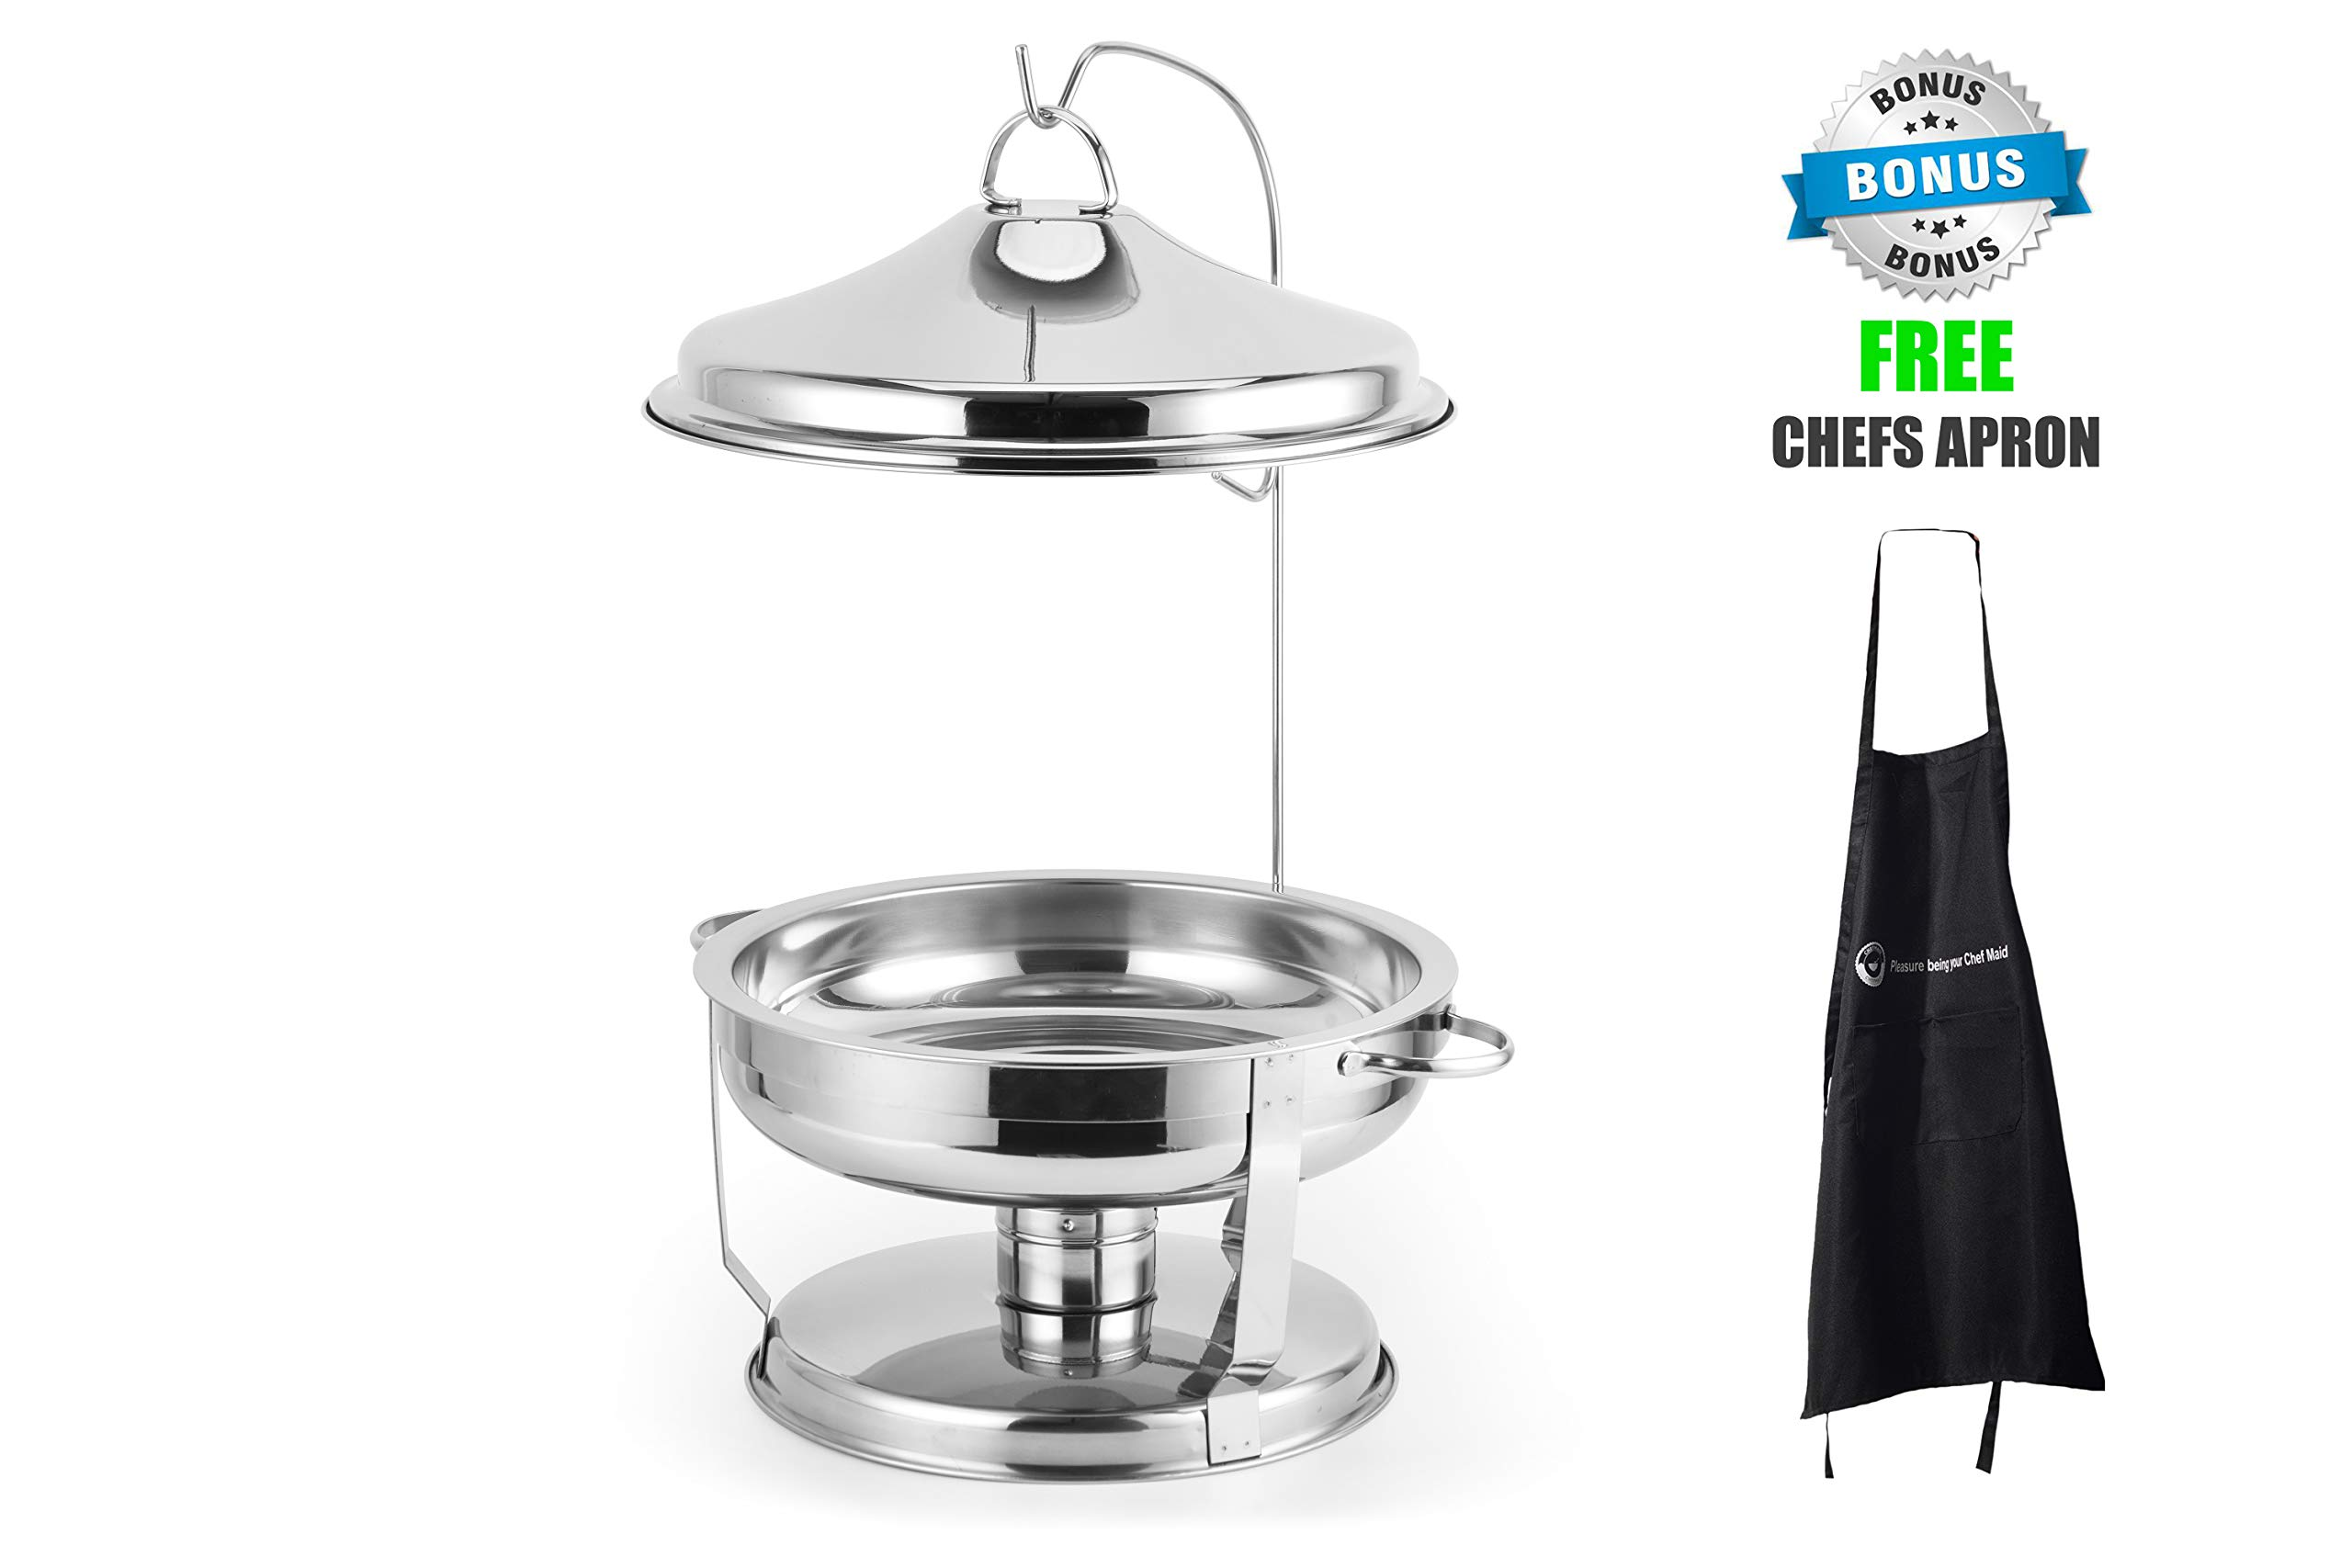 ChefMaid Stainless Steel 6 QT Round Chafer,Dome Cover Set Includes Food Pan, Water Pan and Fuel Holders - Durable, shiny silver, keeps food warm in catered events + BONUS FREE CHEFS APRON